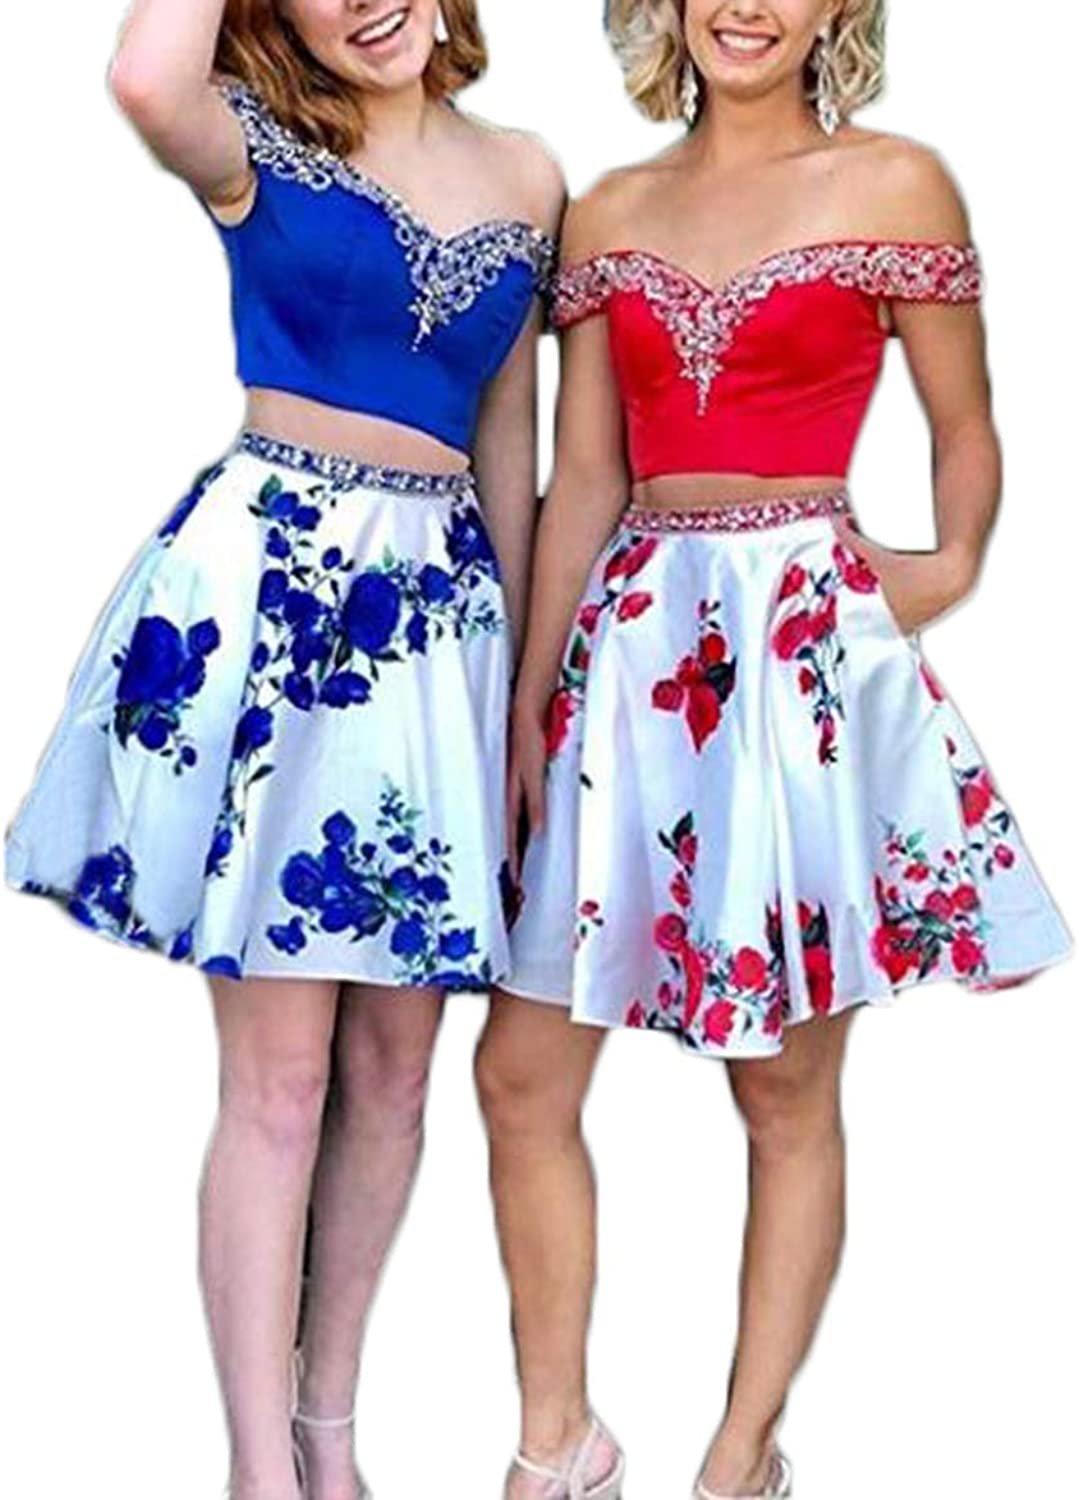 Ri Yun Floral Print Homecoming Dresses Short Two Piece 2018 Off The Shoulder Satin Beaded Prom Dresses with Pockets